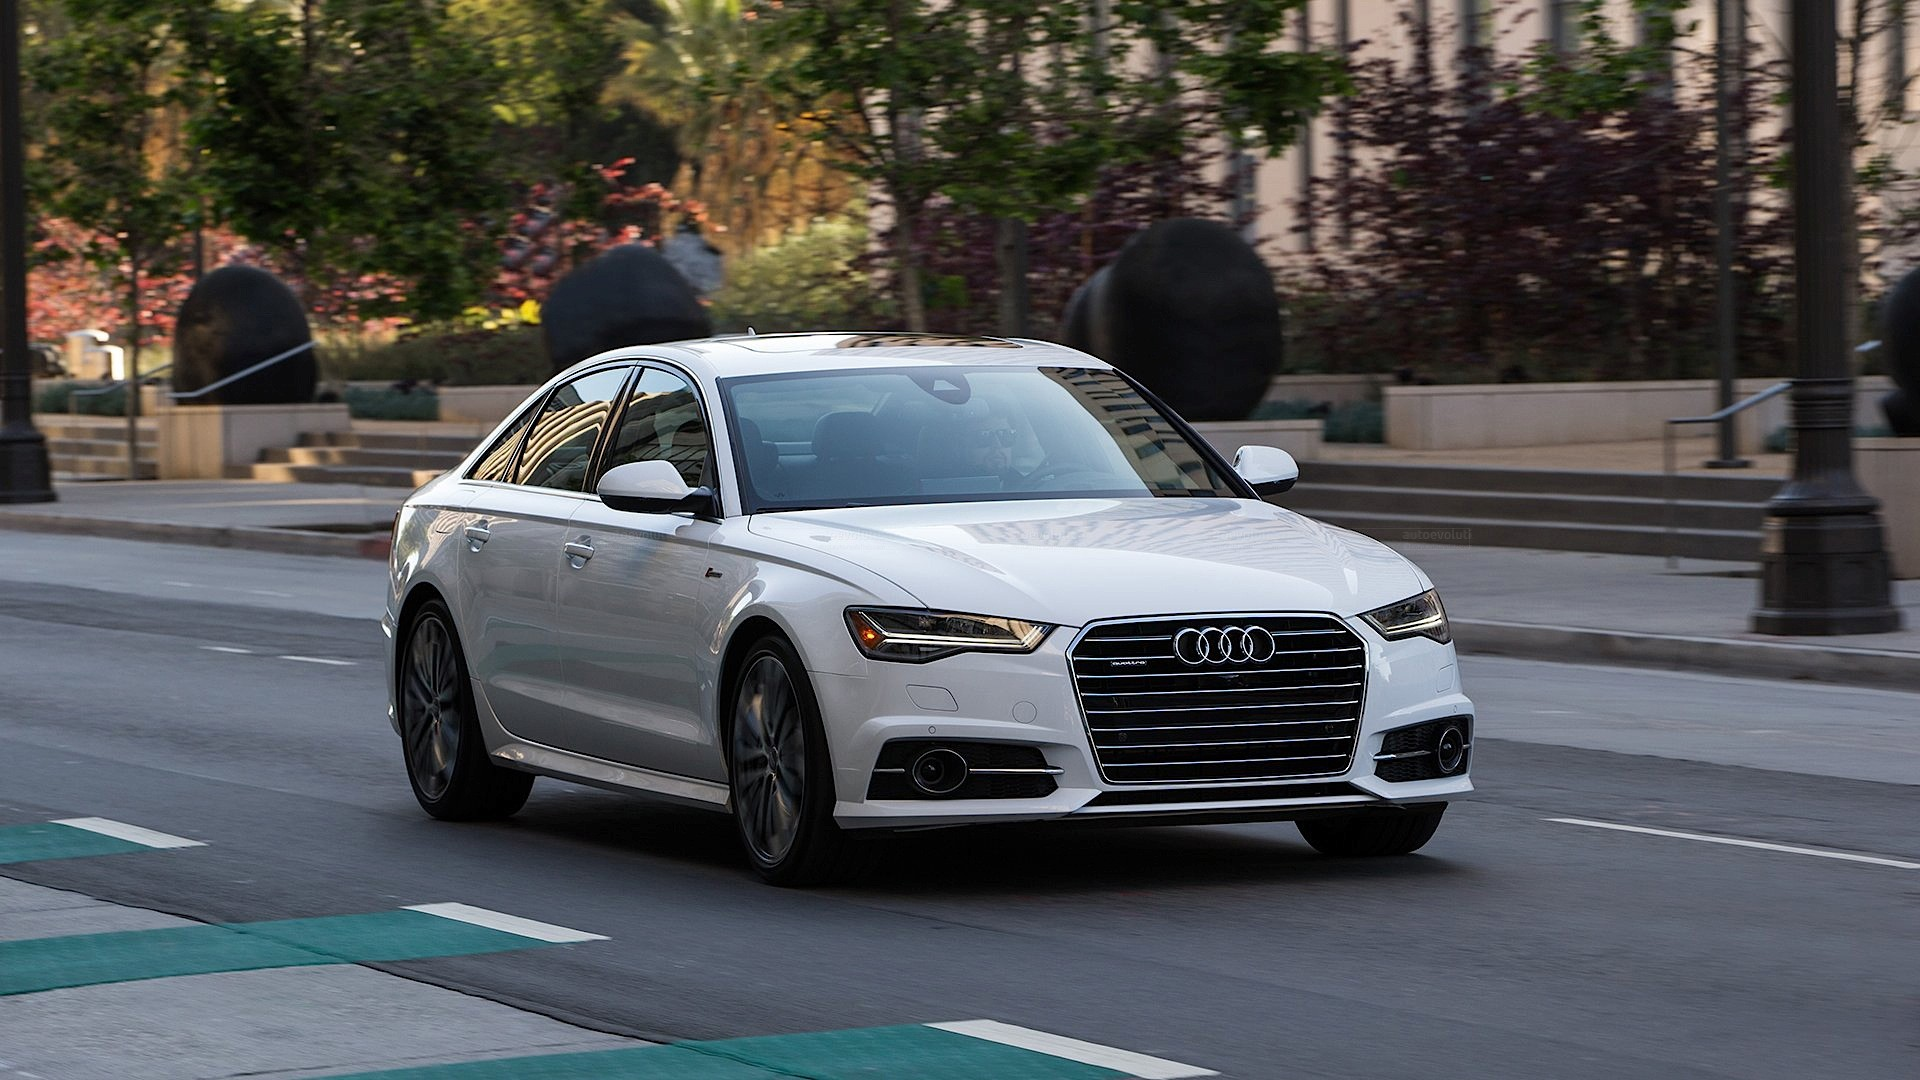 2017 audi a6 white 200 interior and exterior images. Black Bedroom Furniture Sets. Home Design Ideas